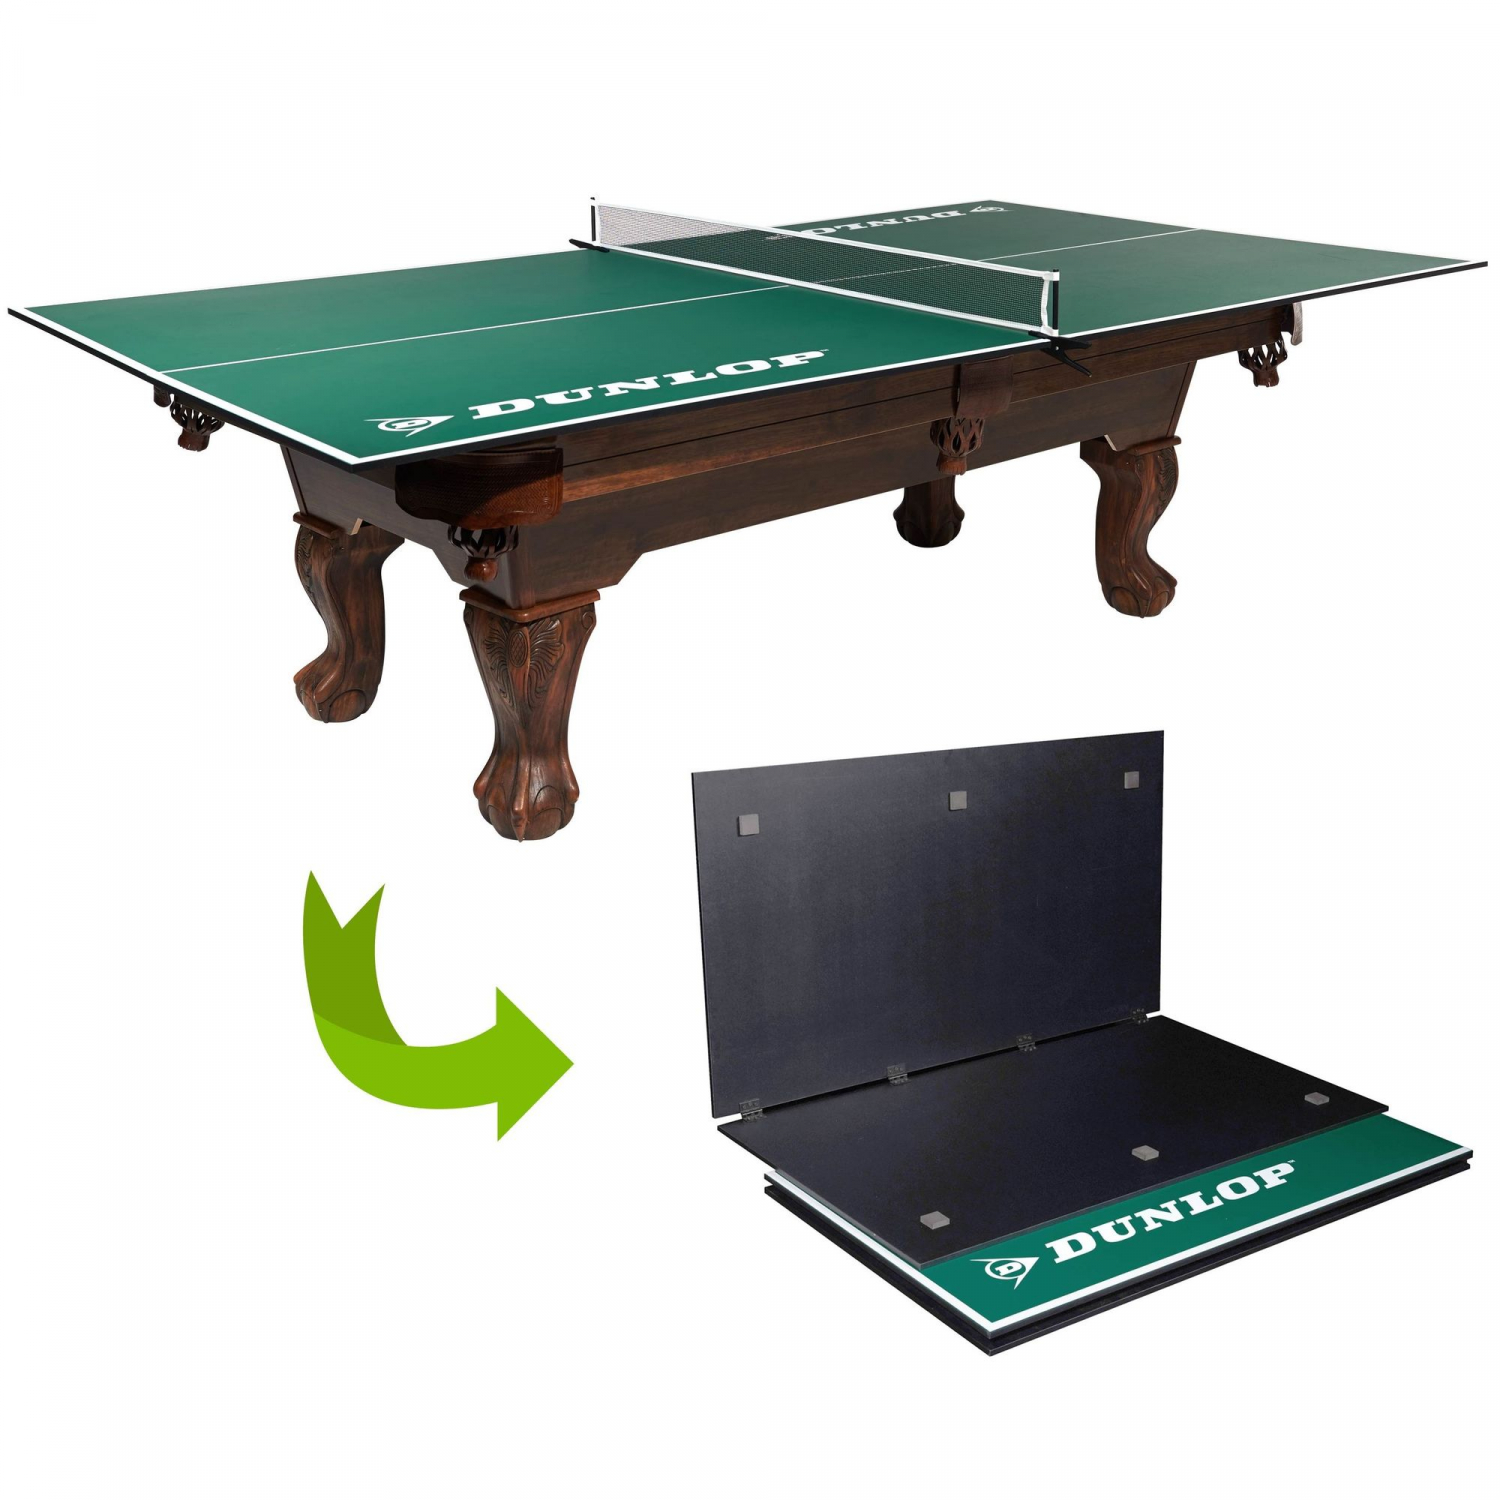 Exceptionnel Details About Folding Ping Pong Table Top Beer Pong Party Games For Adults  Portable Tennis NEW